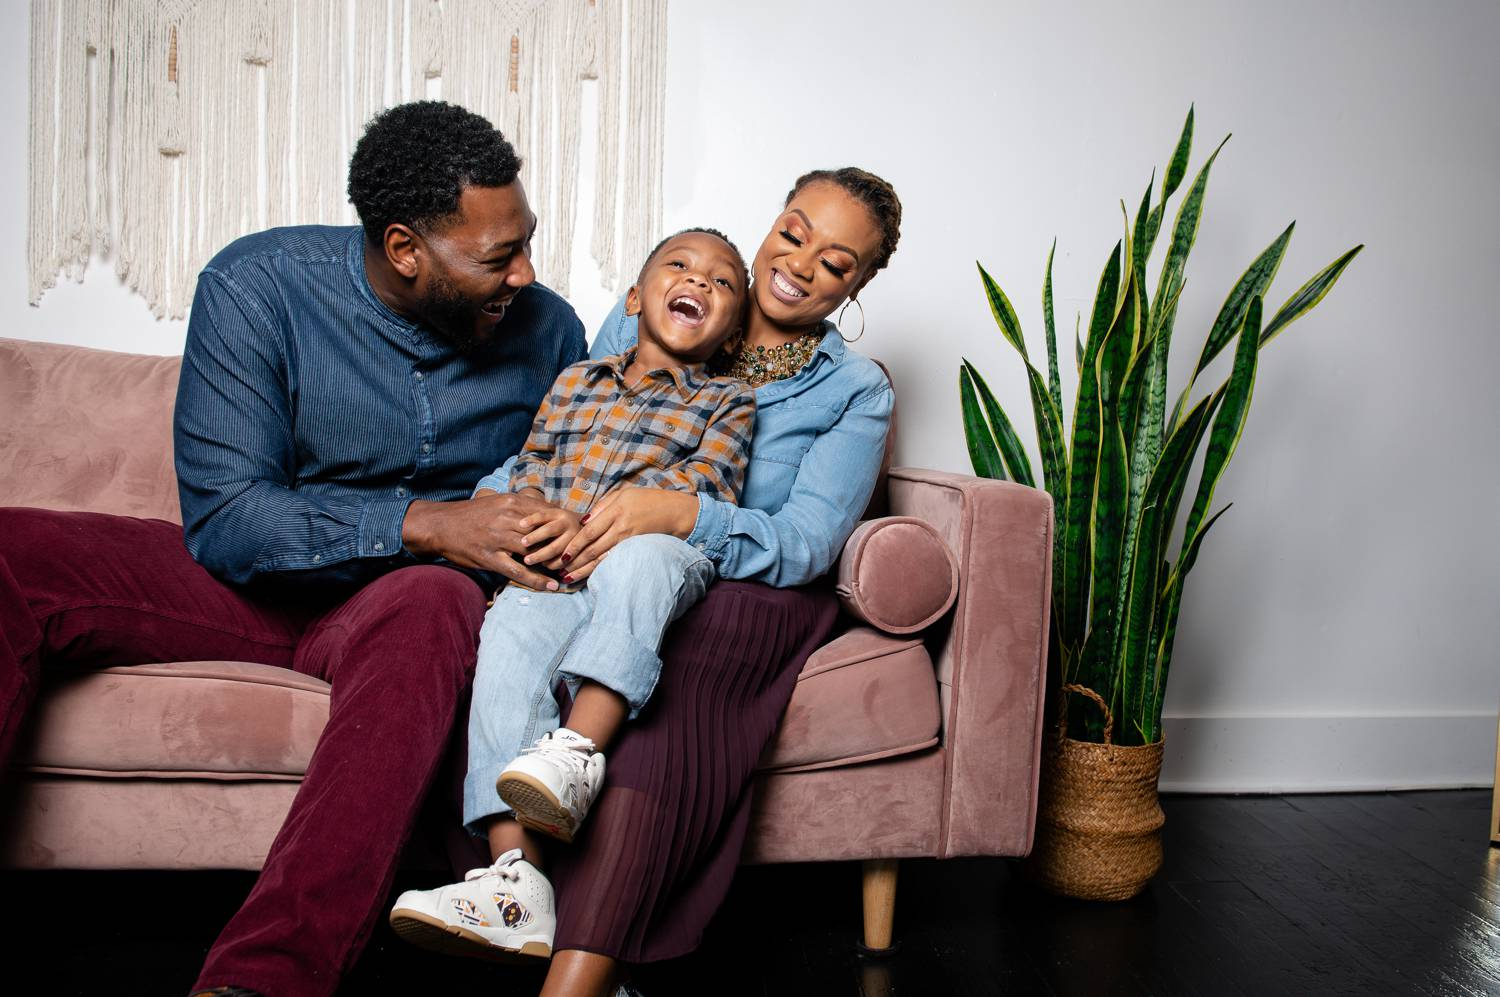 A Black family snuggle close together on a rose-colored couch in their living room